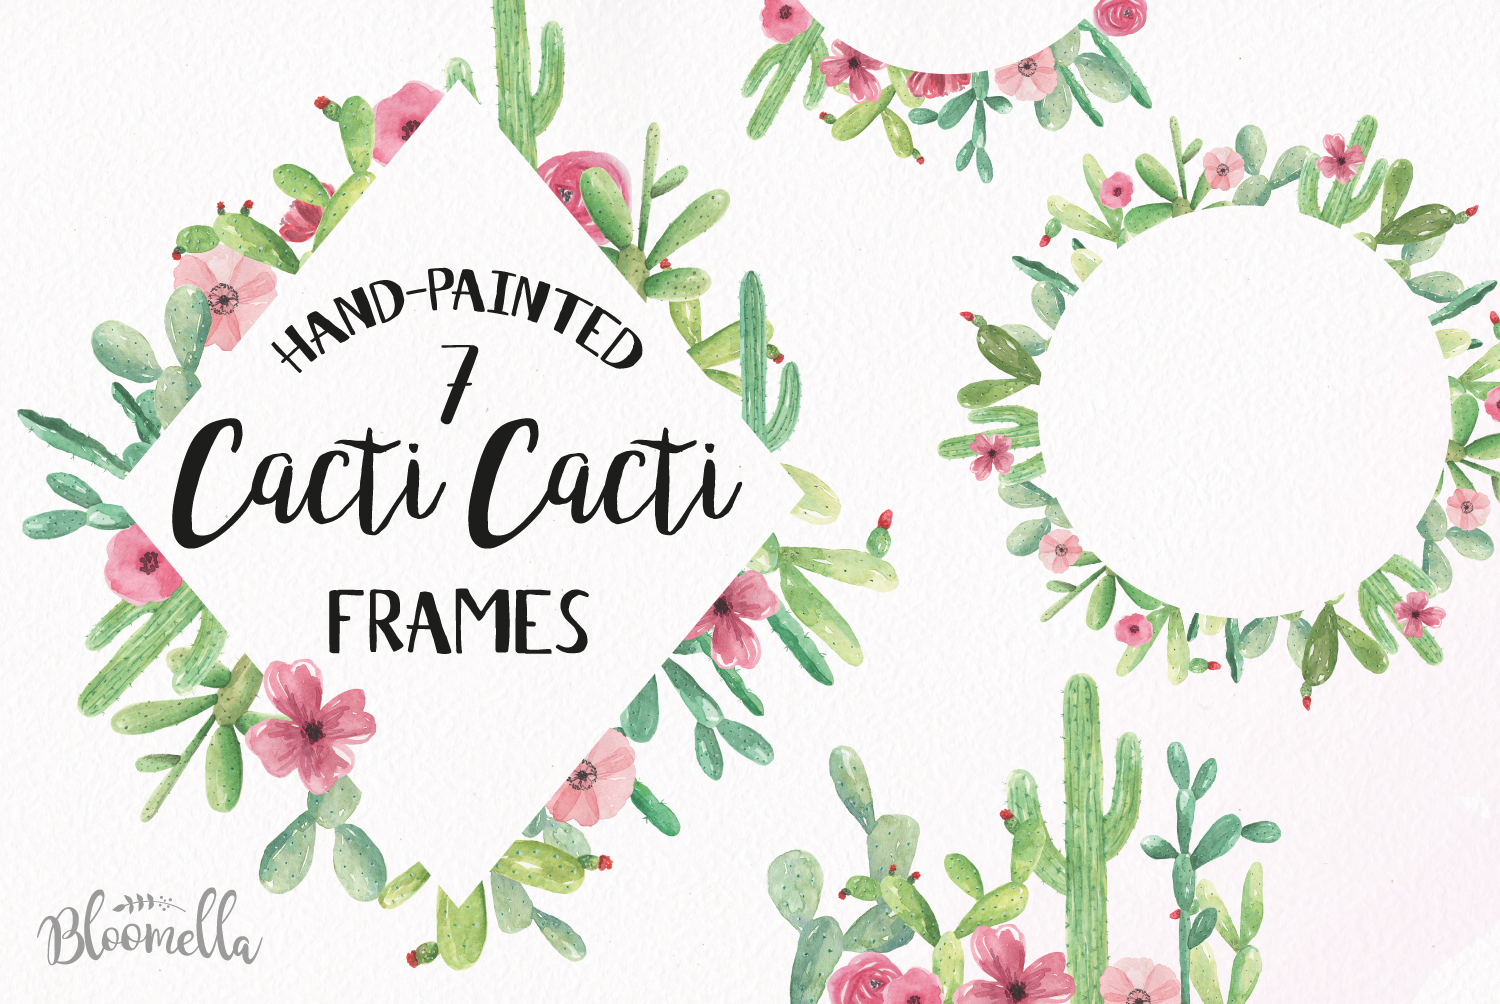 Download Free Cactus Frames 7 Clipart Watercolour Cacti Frame Succulent Graphic By Bloomella Creative Fabrica for Cricut Explore, Silhouette and other cutting machines.